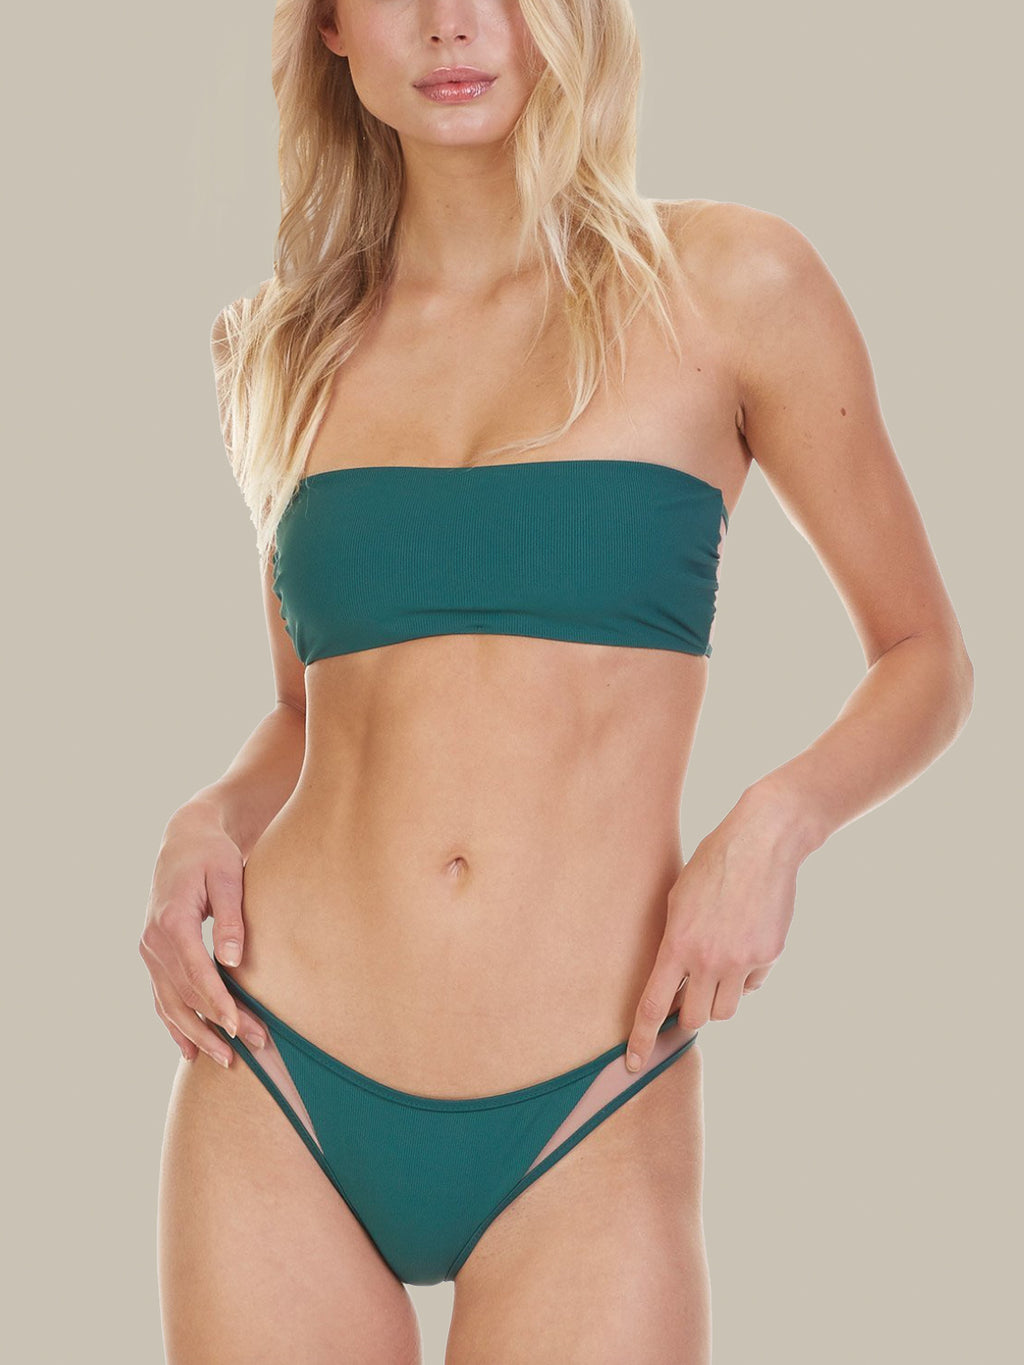 The Tori Praver Manon Bikini Bottoms feature a cheeky bottom and mesh details. They are ribbed and emerald green.